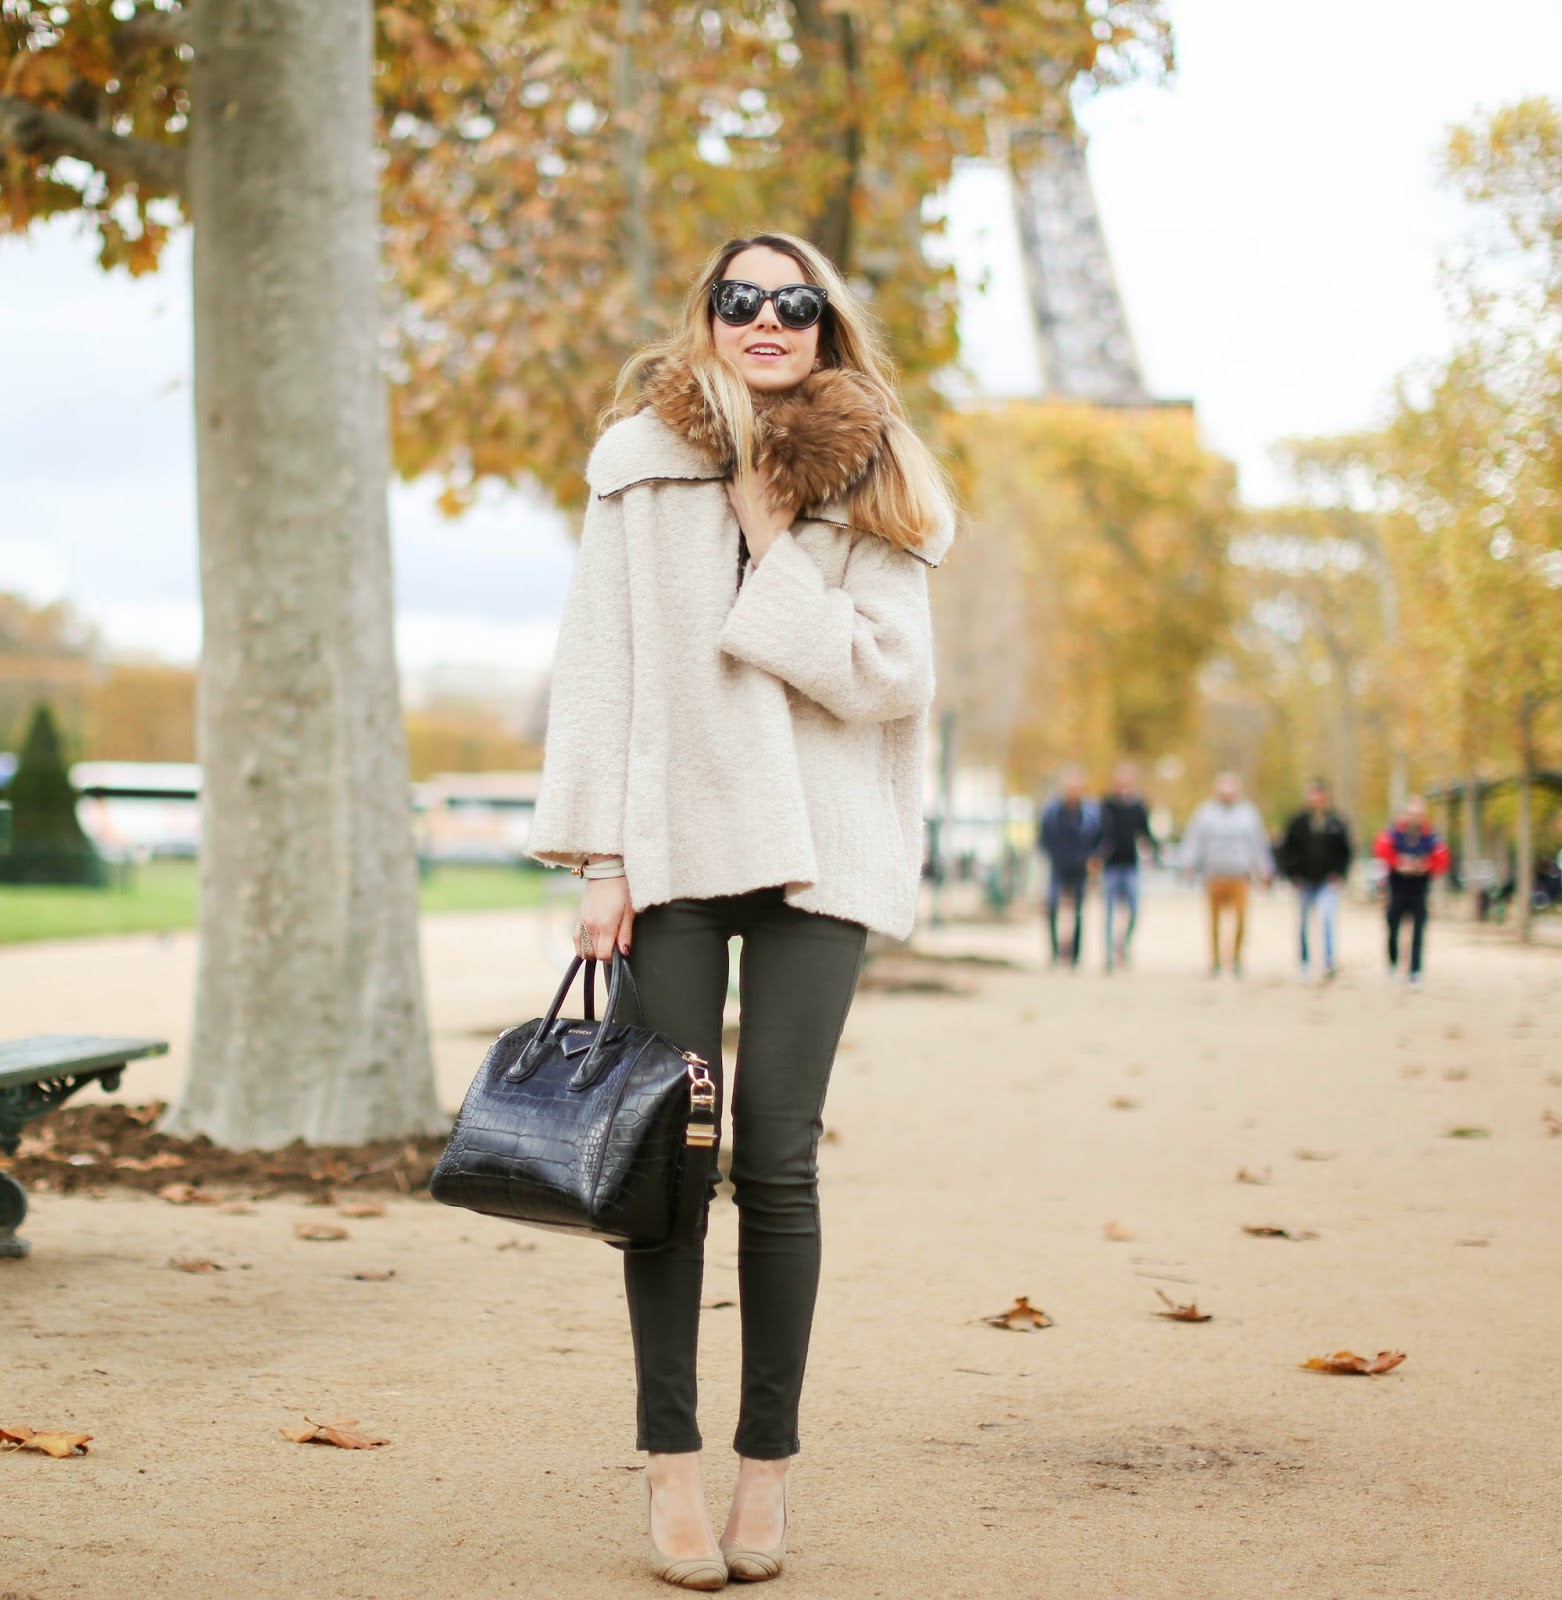 léon&harper, oasis, khaki jeans, fur, iro, givenchy, eiffel tower, streetstyle, paris, fashion blogger